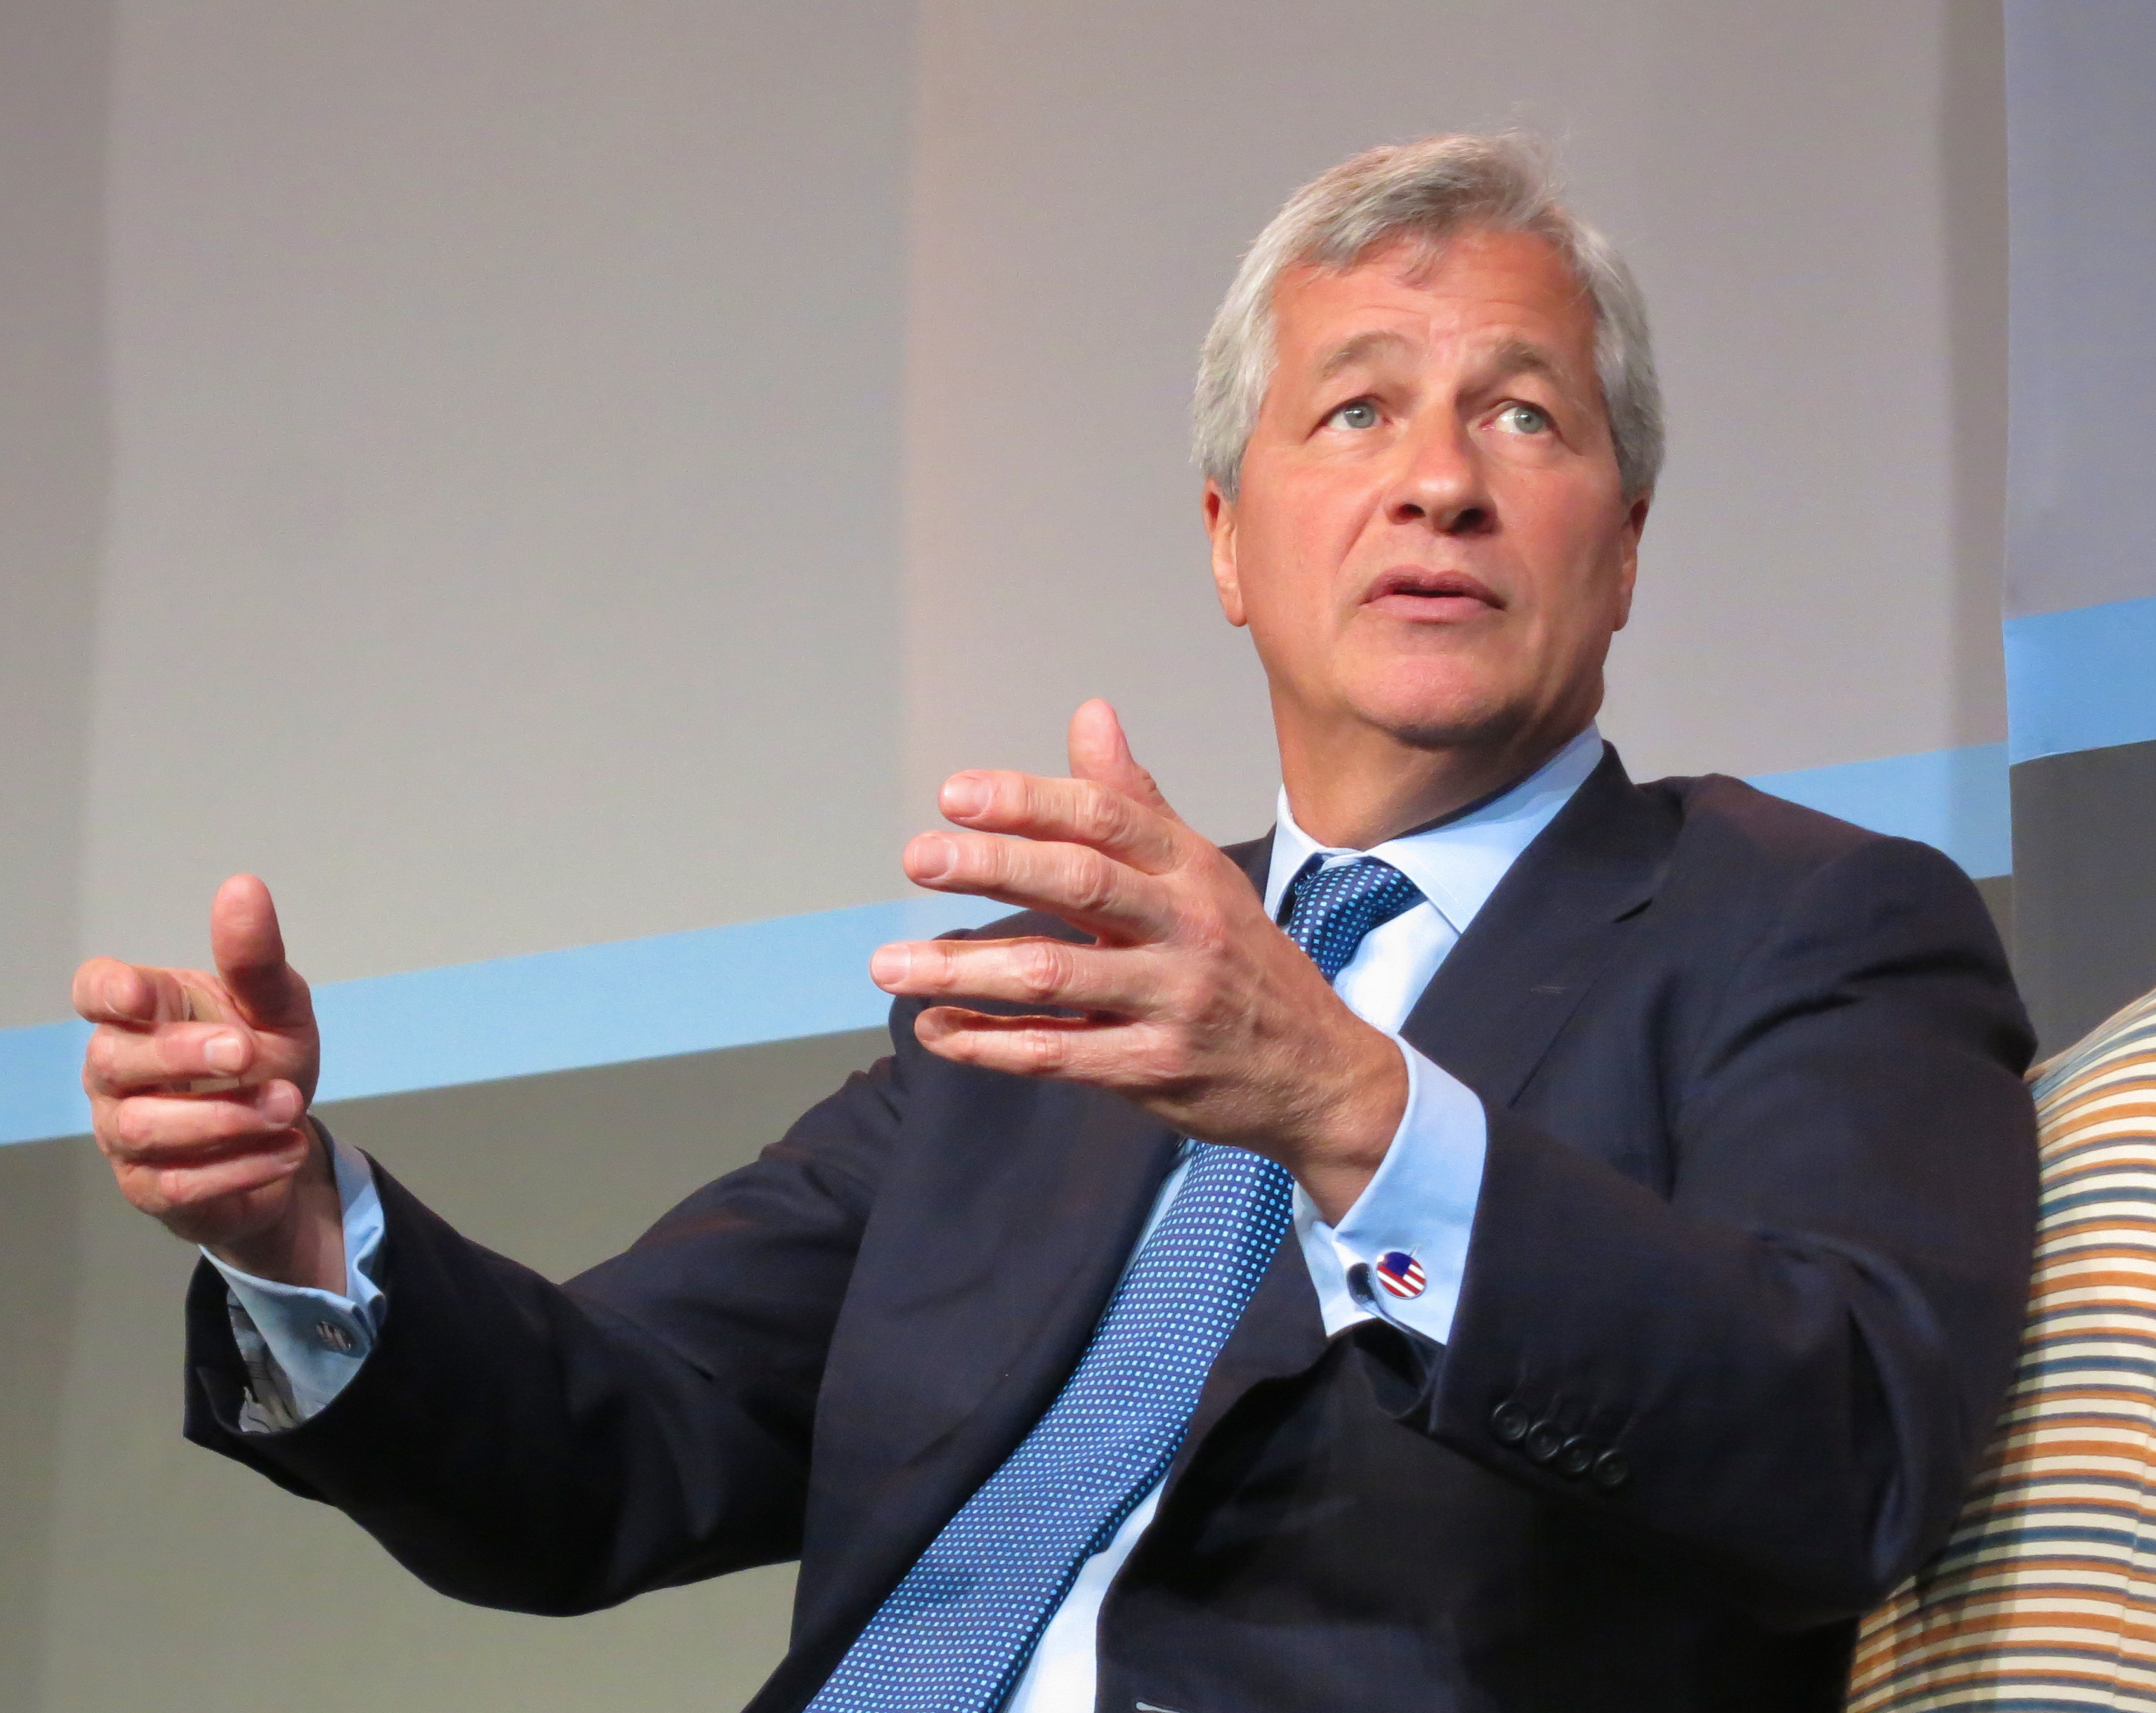 Jamie Dimon - Wikipedia, the free encyclopedia